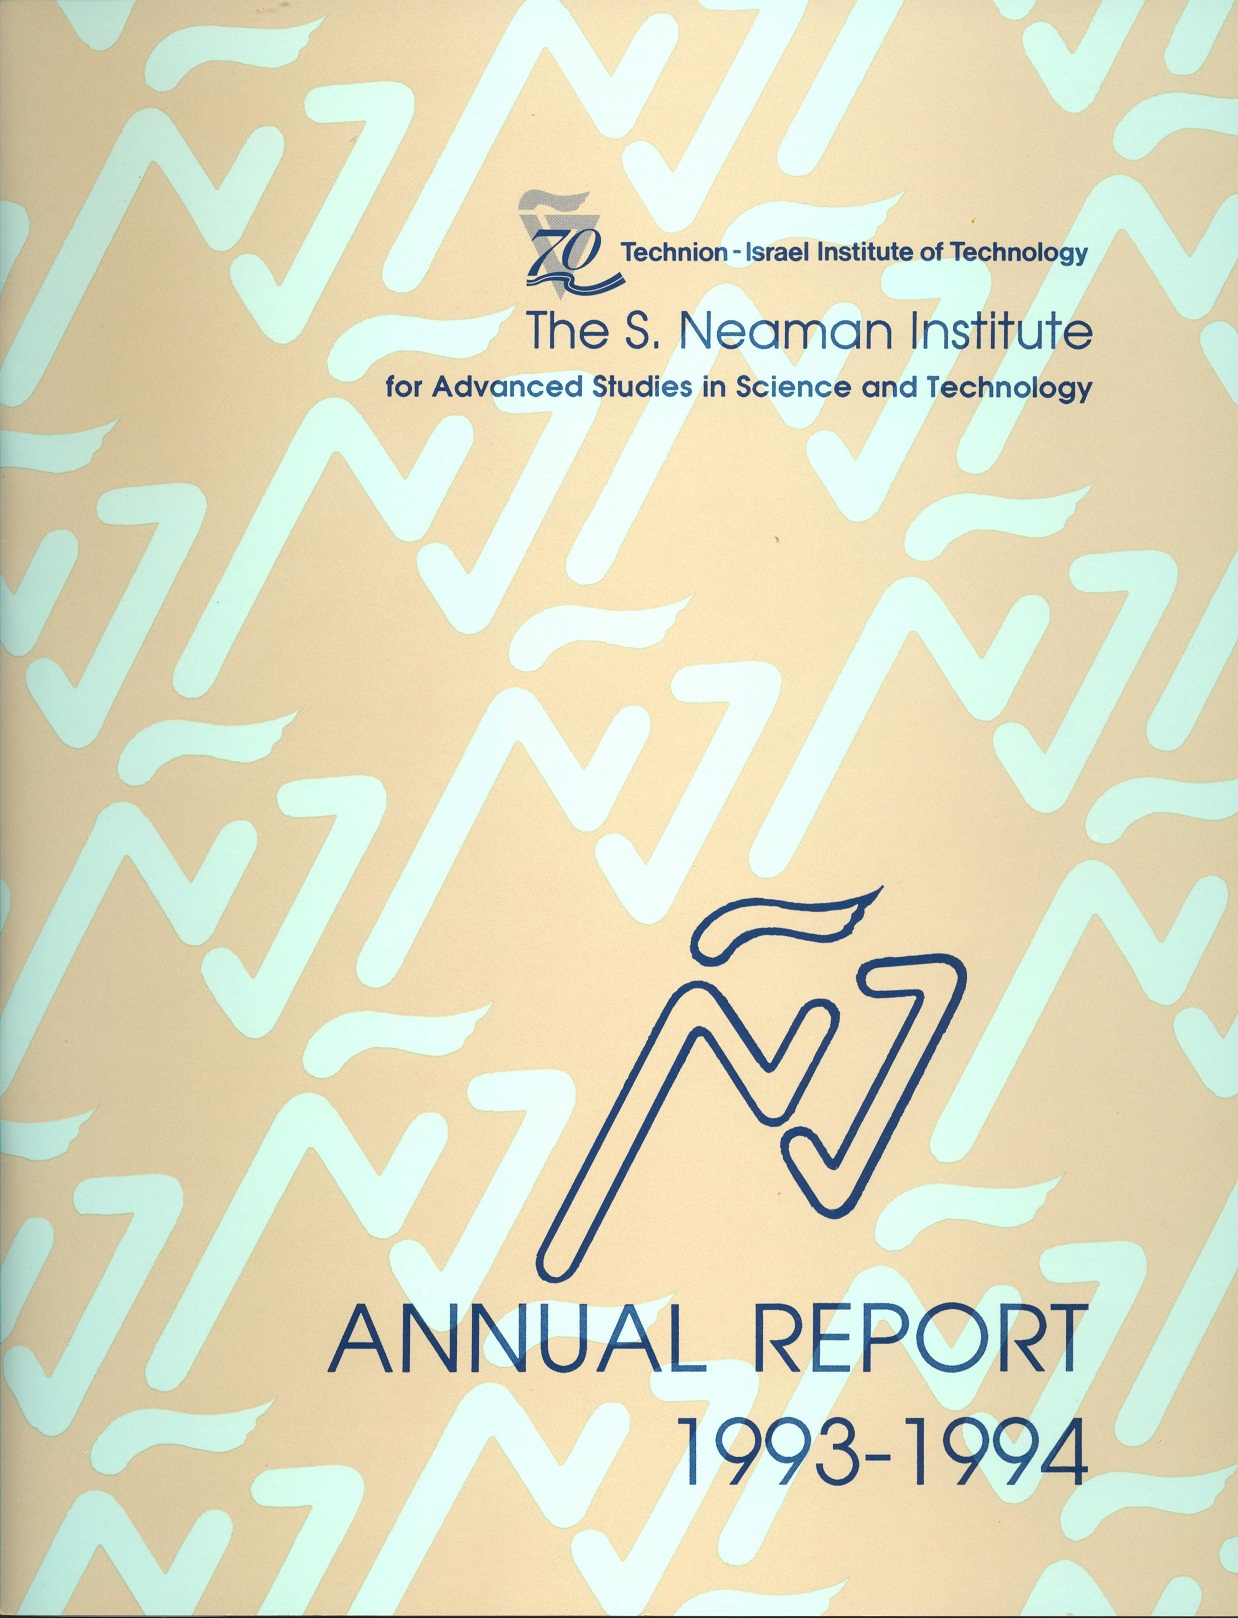 Annual Report 1993-1994 Samuel Neaman Institute